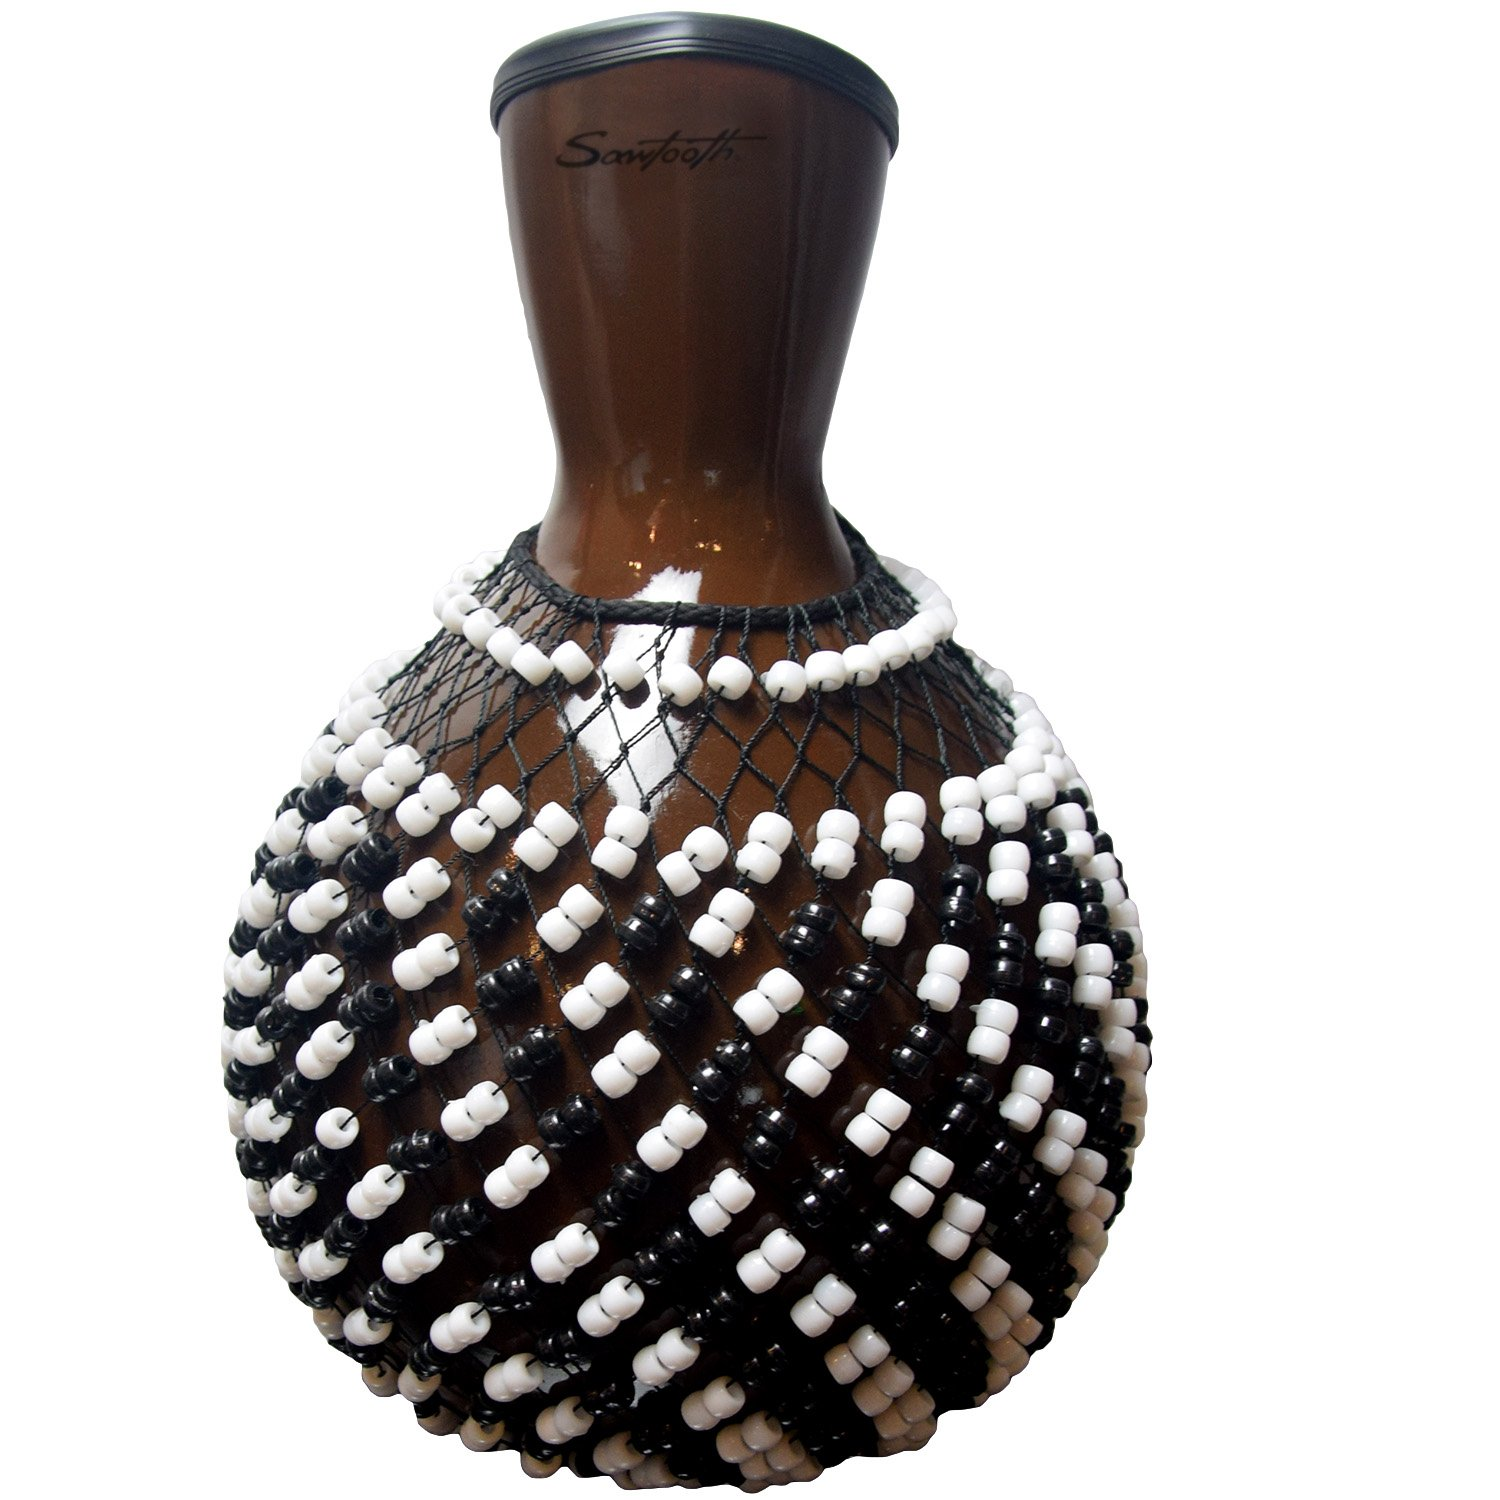 Sawtooth Beaded Shekere, Shaker (ST-SHEK) by Sawtooth